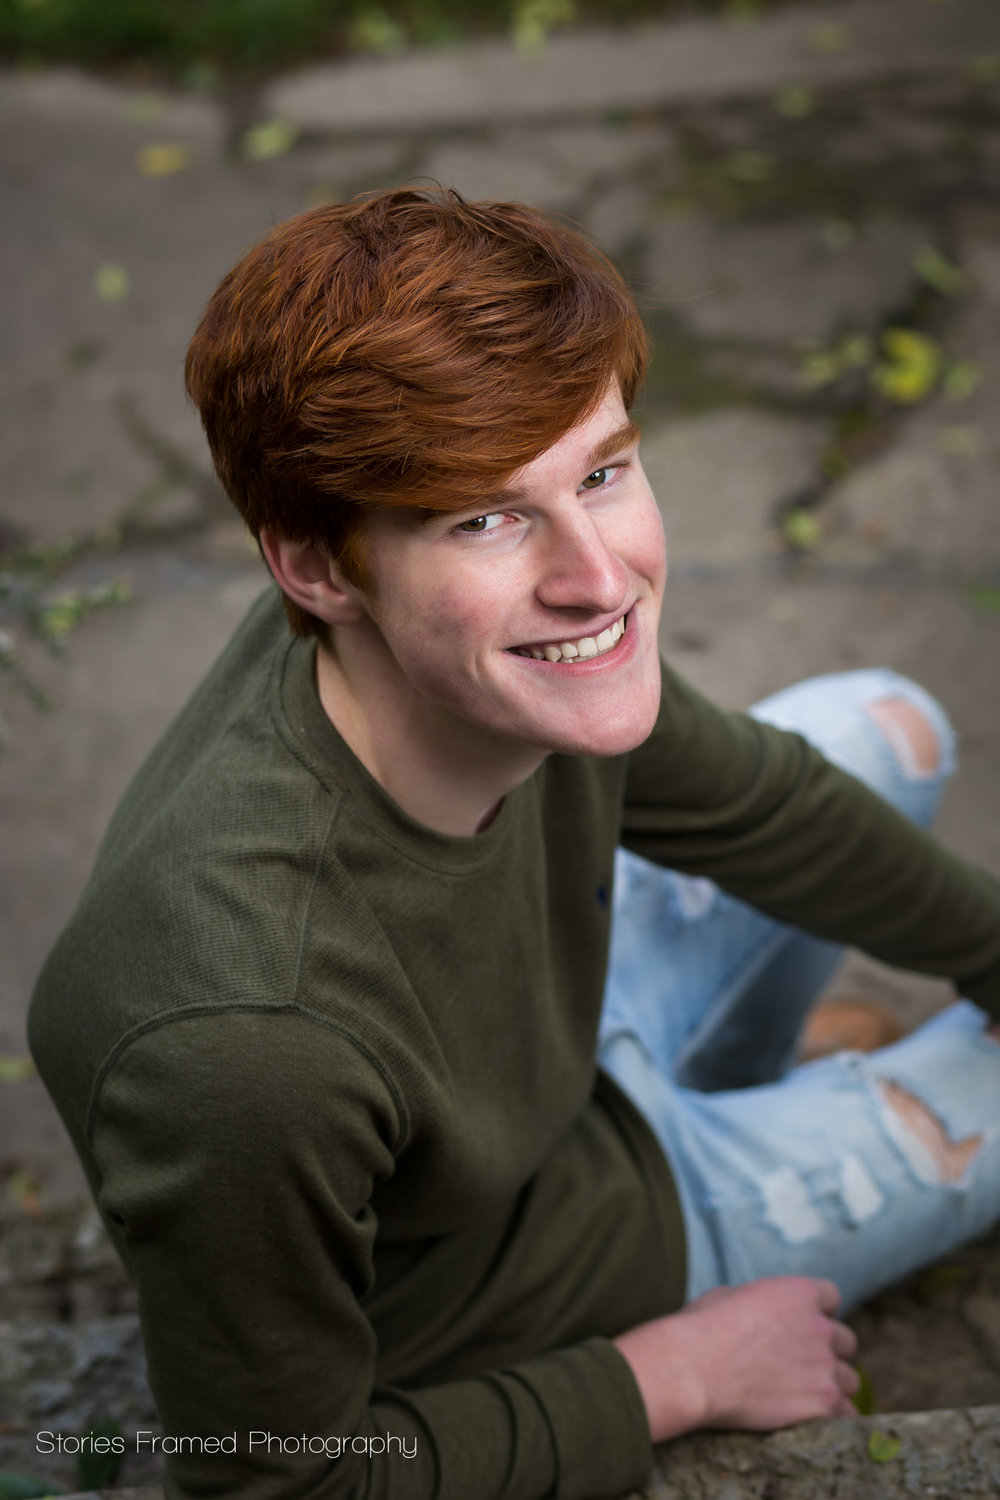 high-school-senior-redhead-looking-up-.jpg